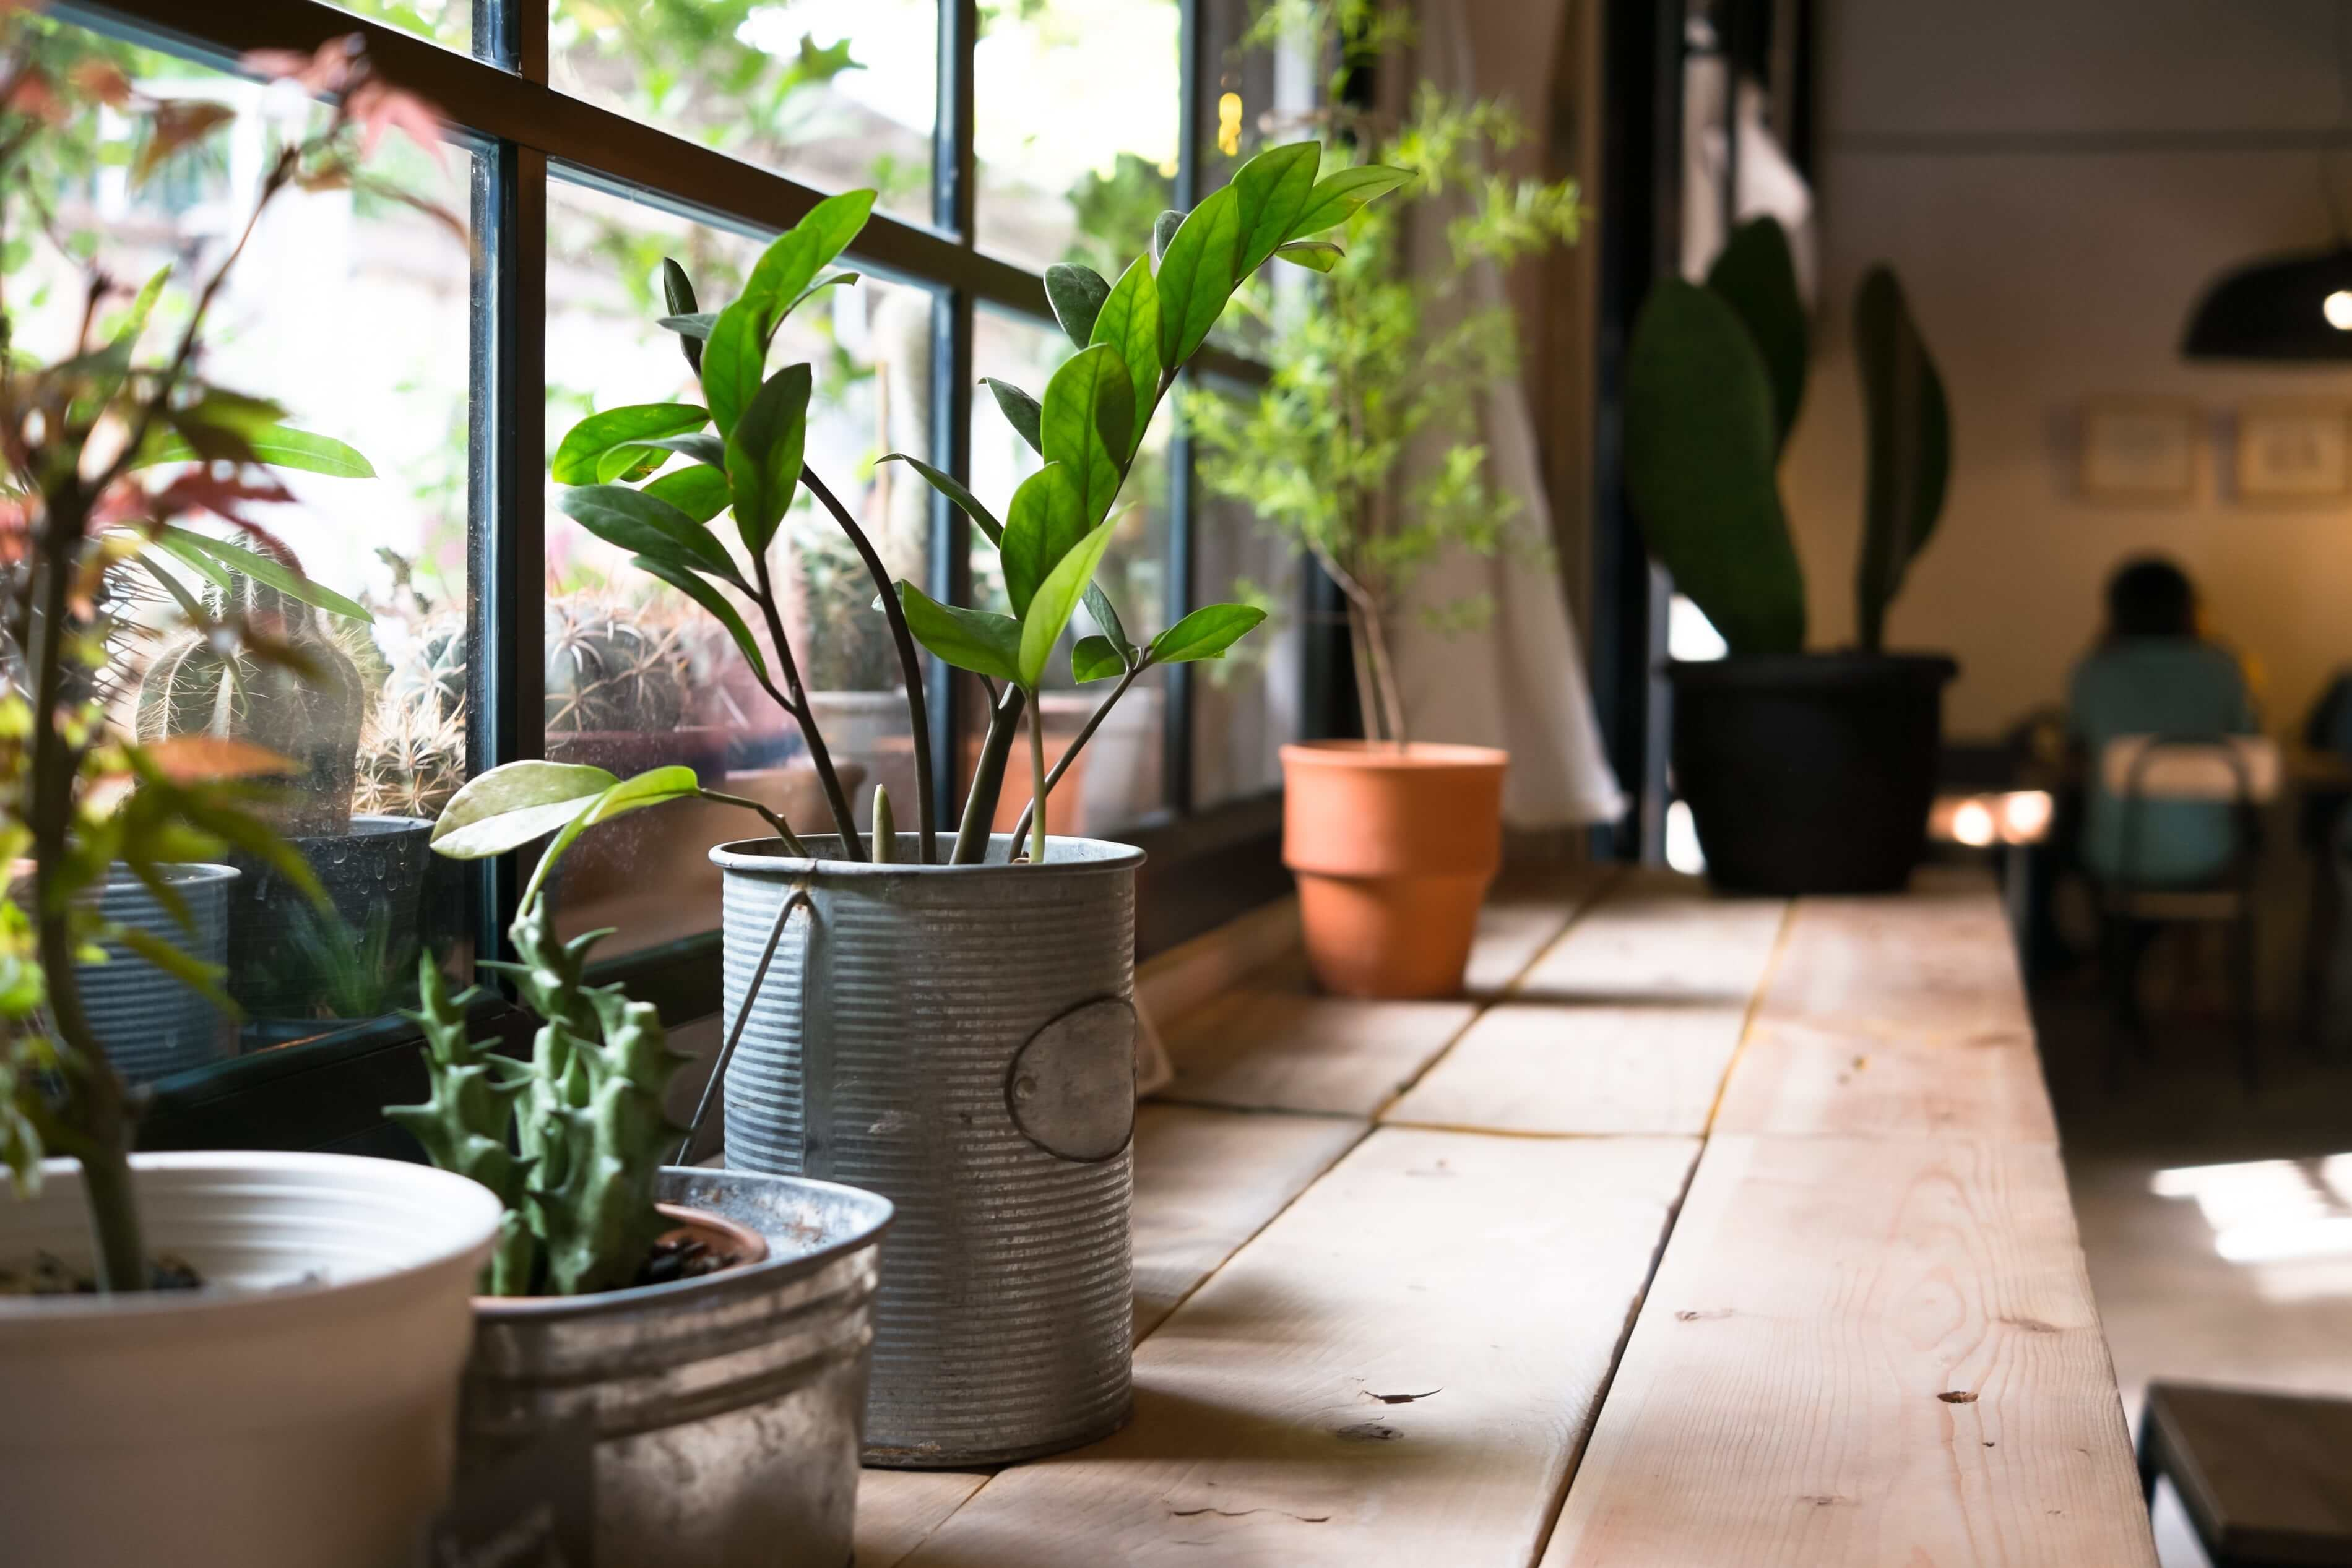 How to Enjoy a Breath of Fresh Air Indoors, The Natural Way?